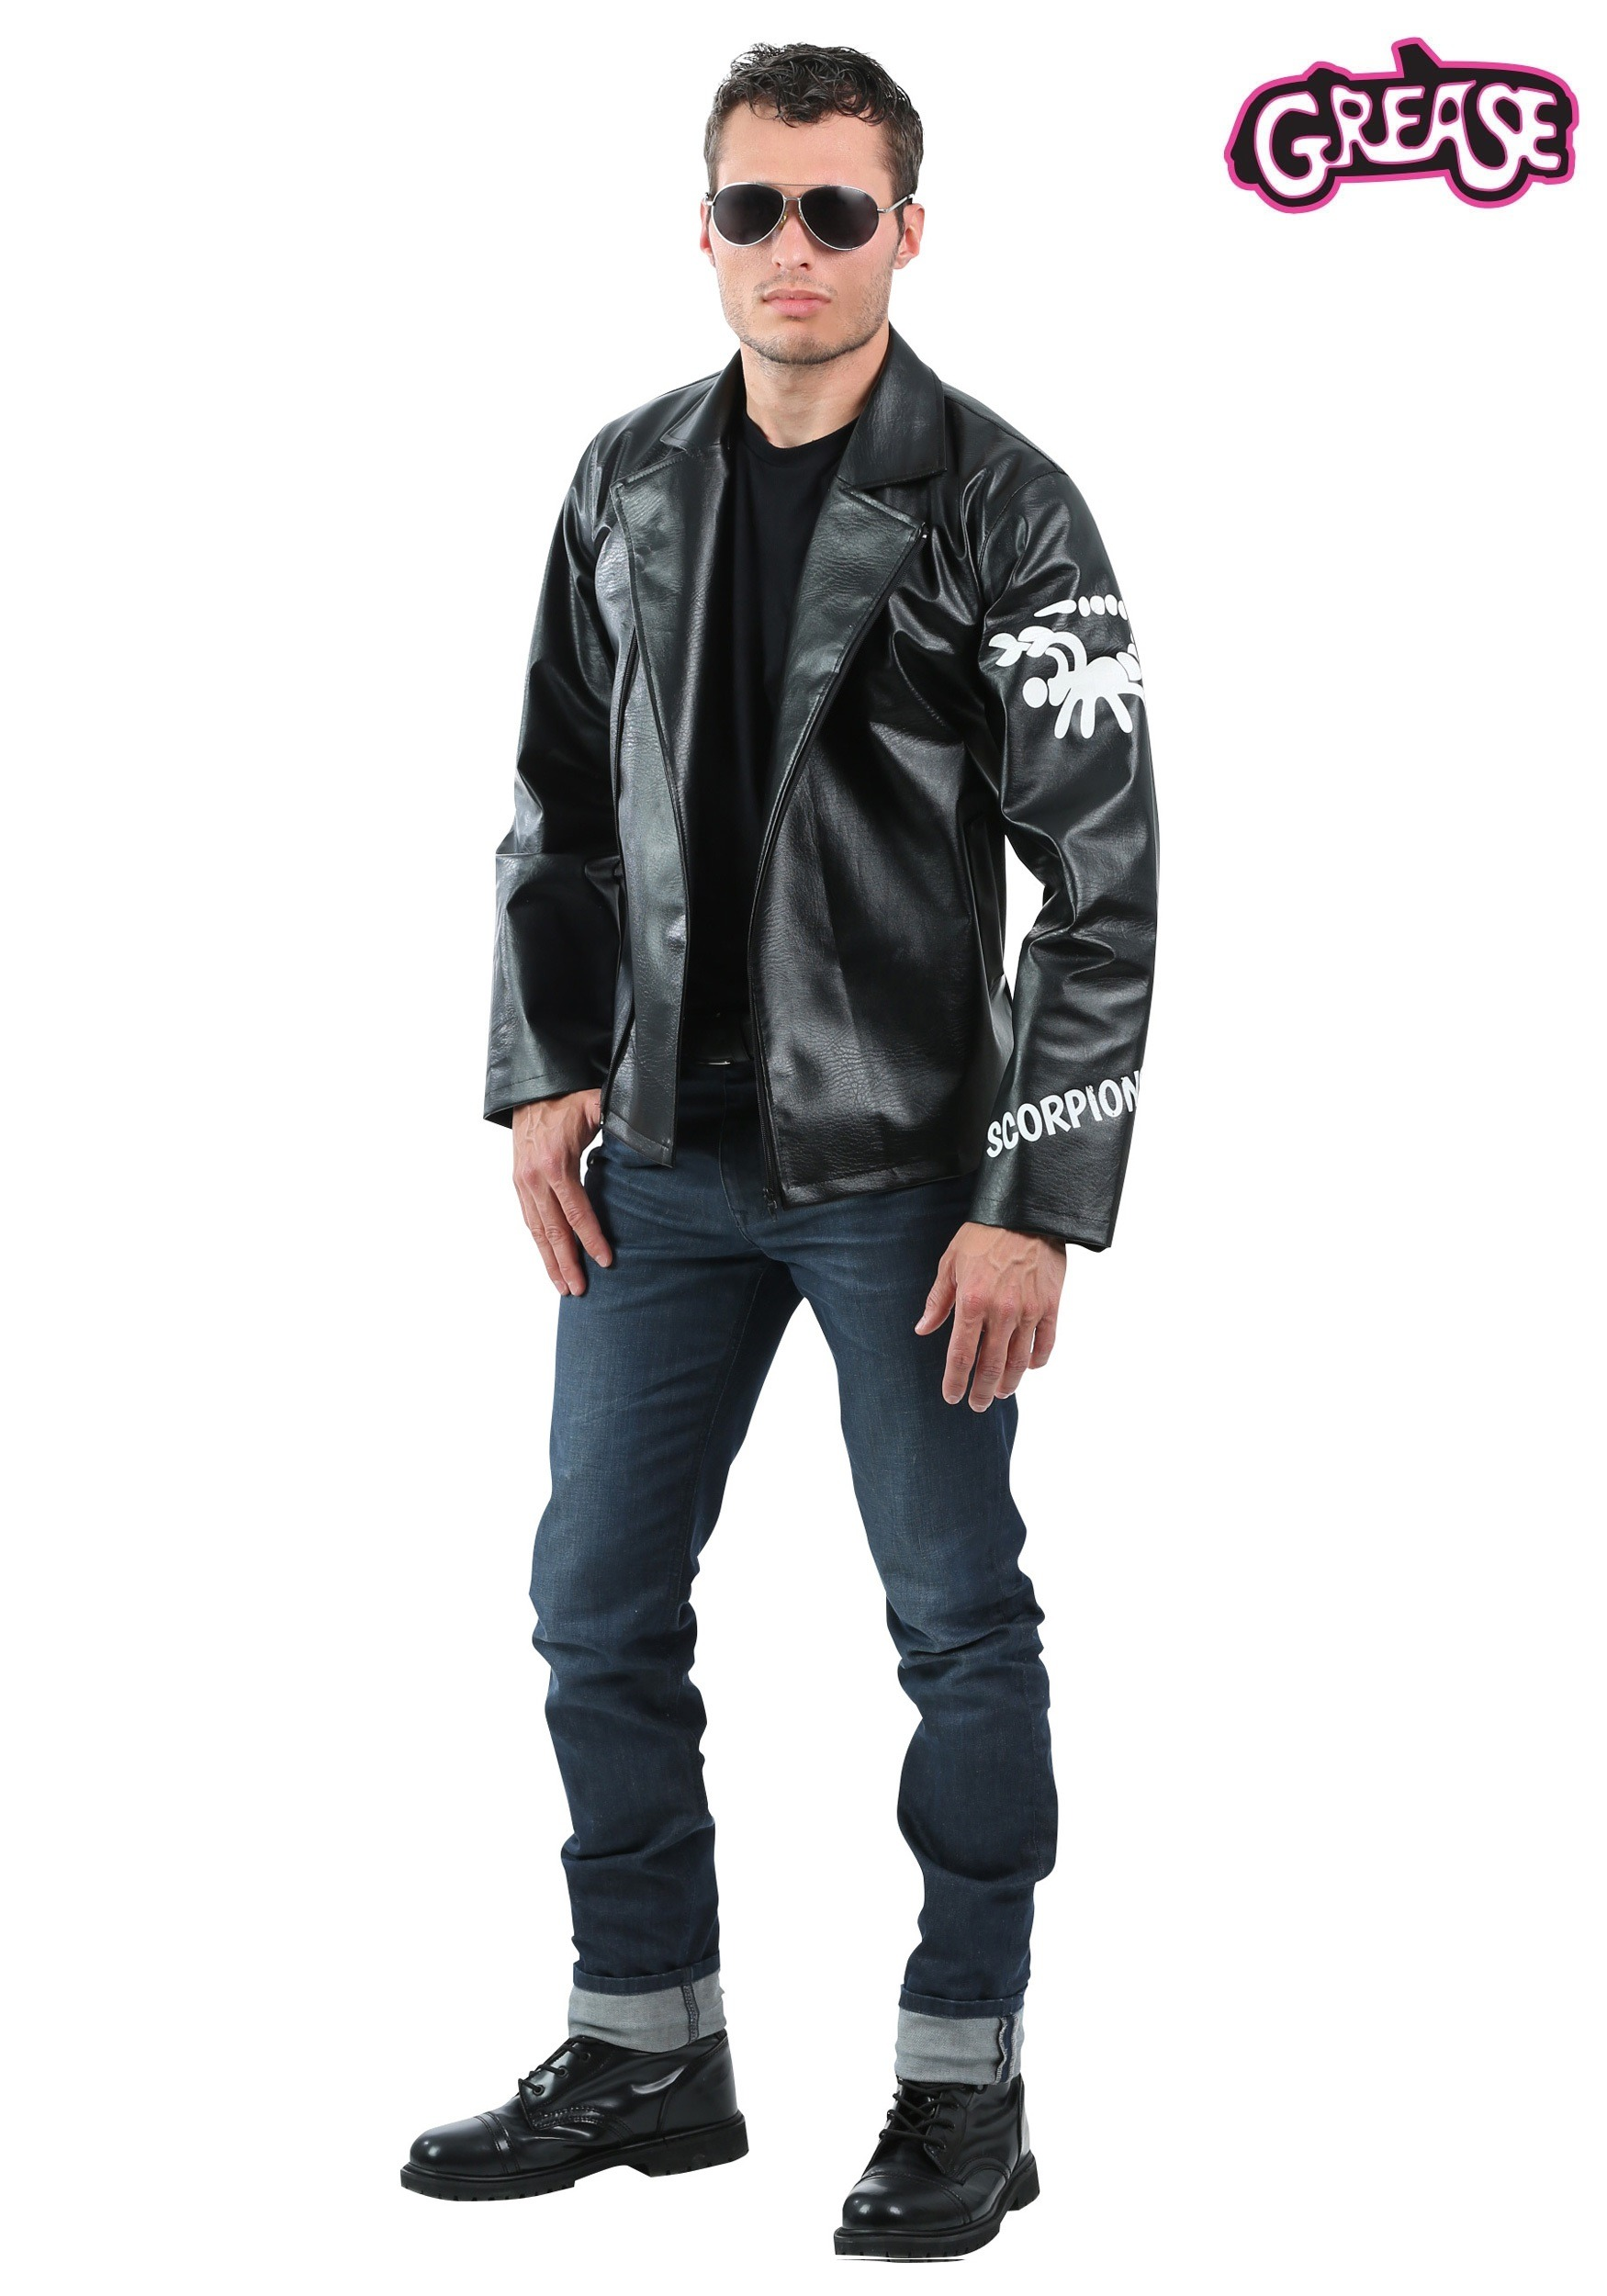 Grease Menu0026#39;s Scorpions Jacket